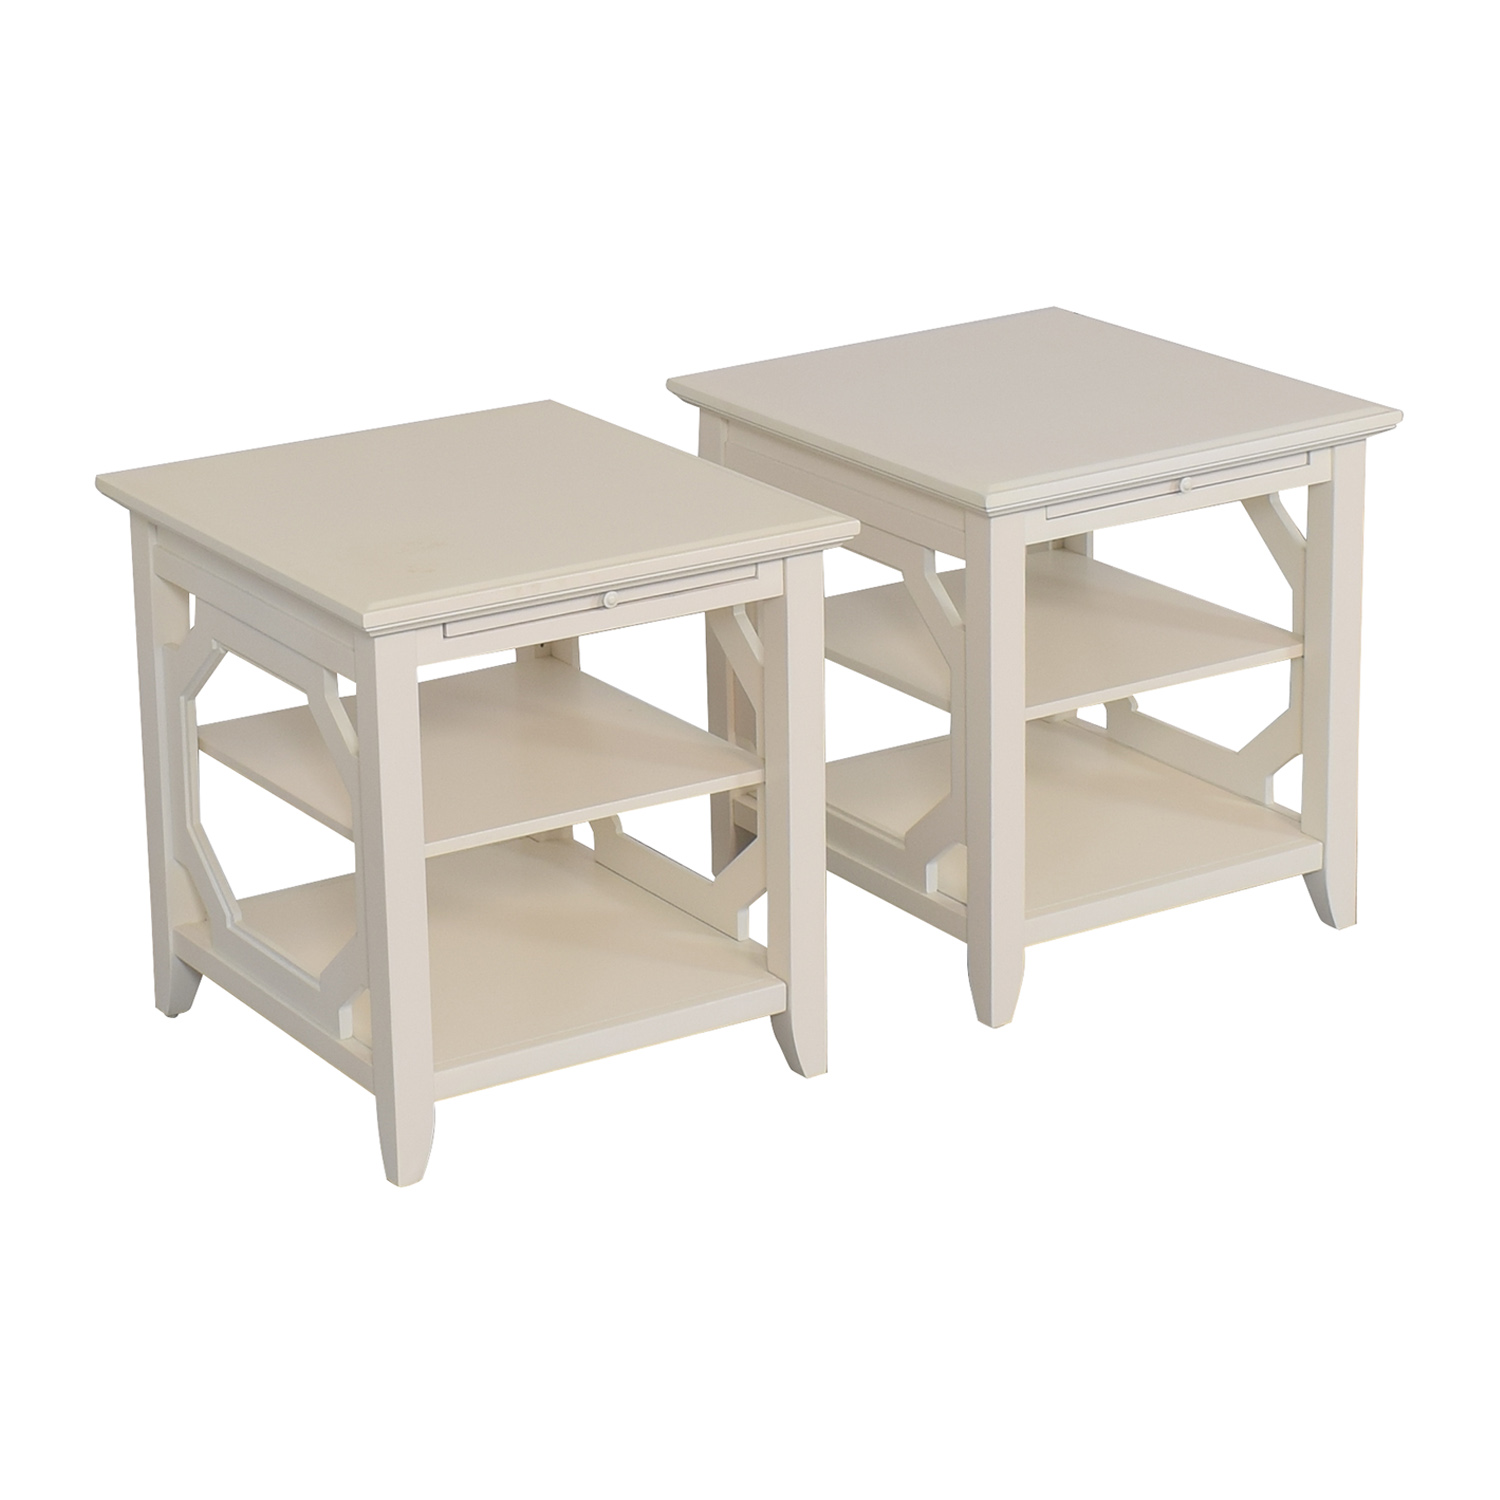 Raymour & Flanigan Raymour & Flanigan End Tables second hand